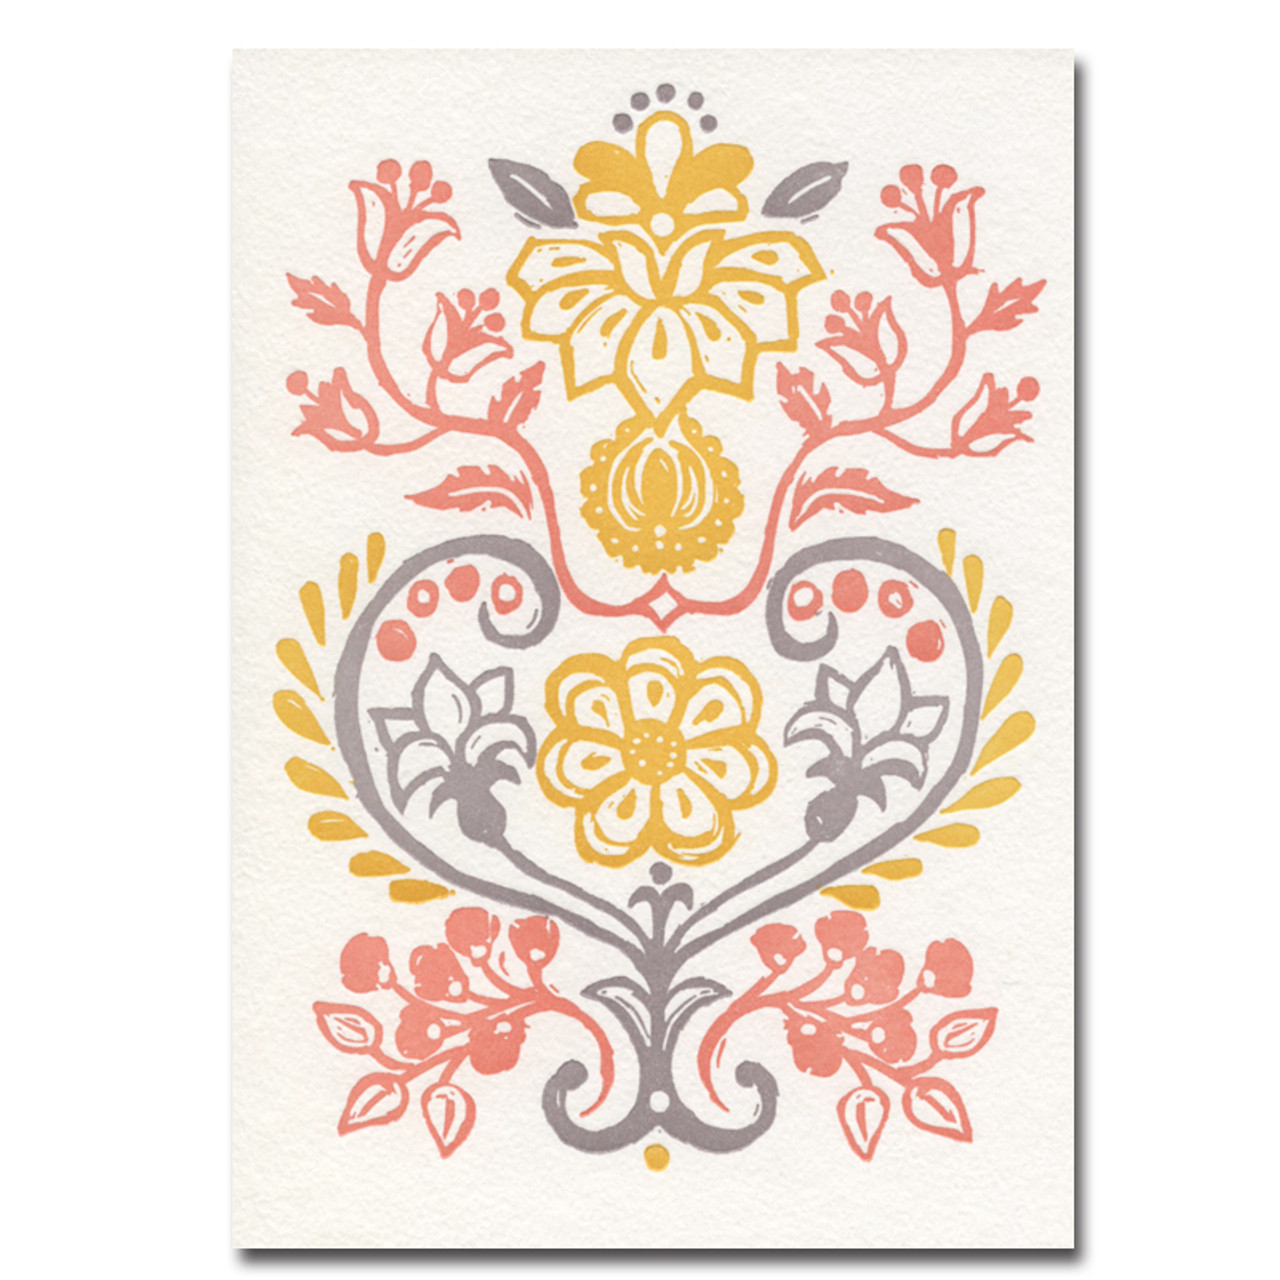 Saturn Press letterpress Flowers and Vine card. Cover shows white and rose flowers intertwined with gray vine